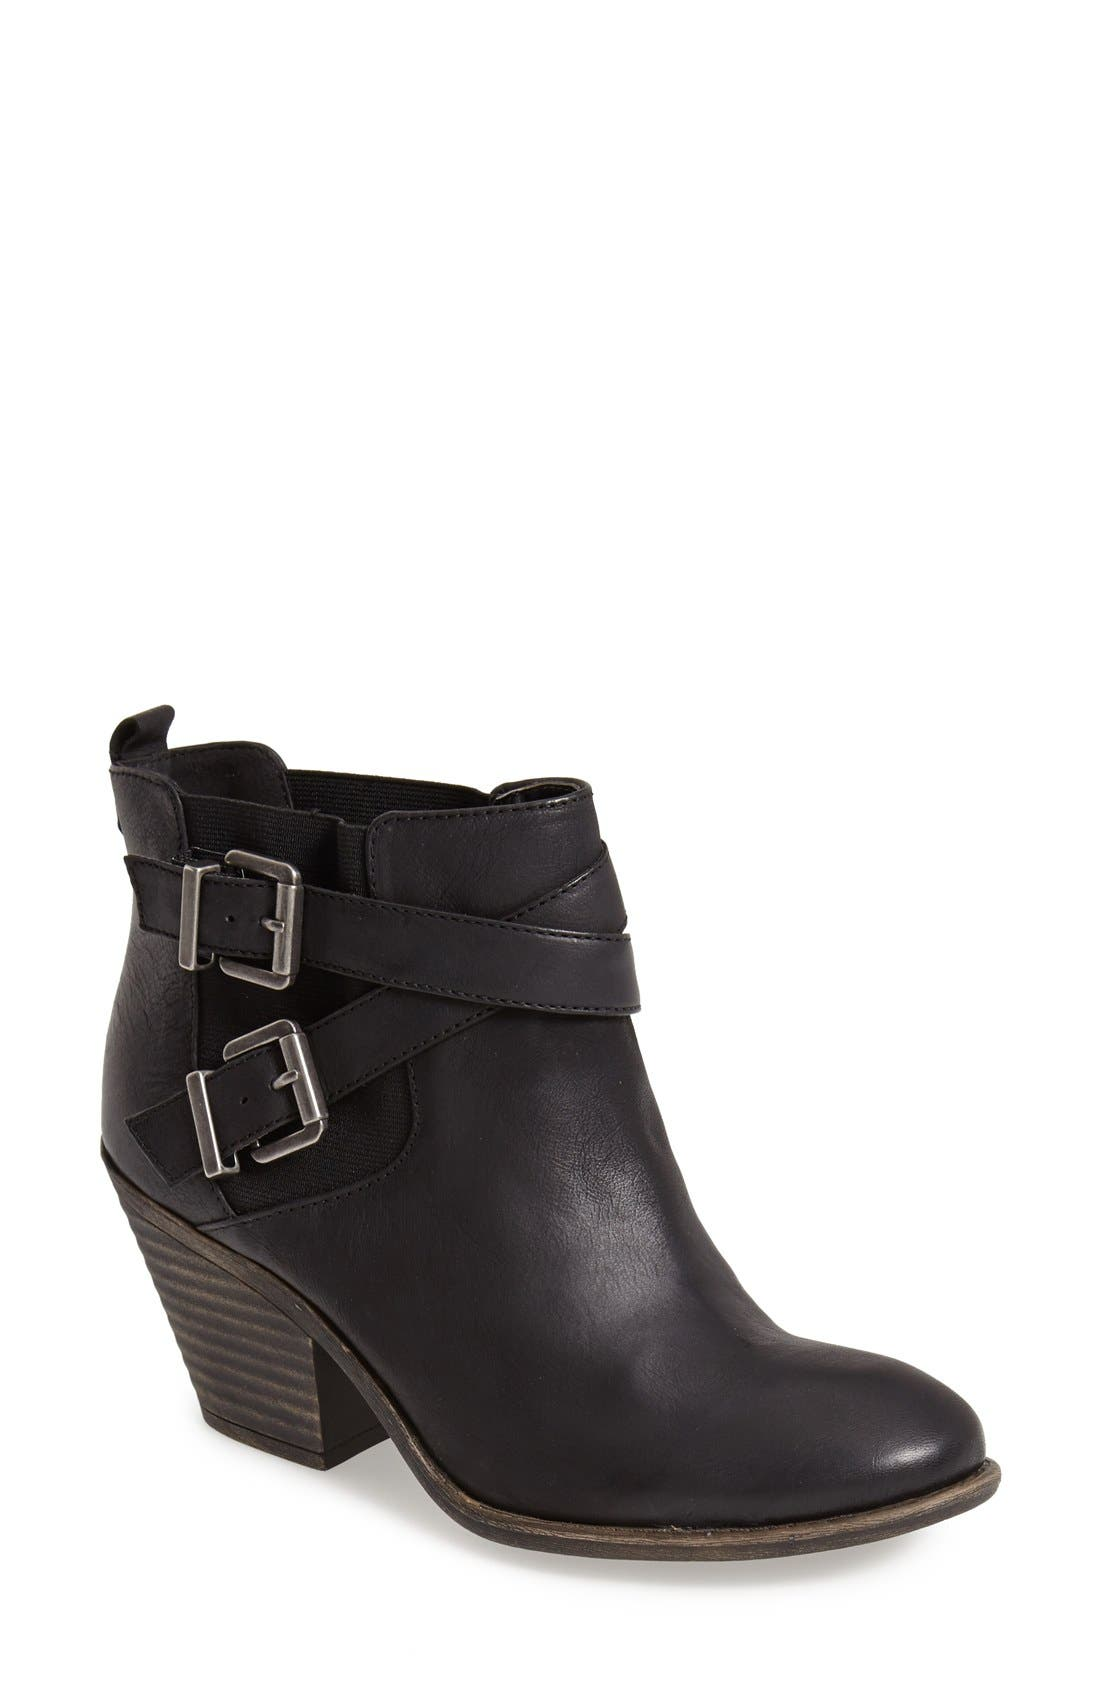 Alternate Image 1 Selected - Sole Society 'Maris' Leather Bootie (Women)